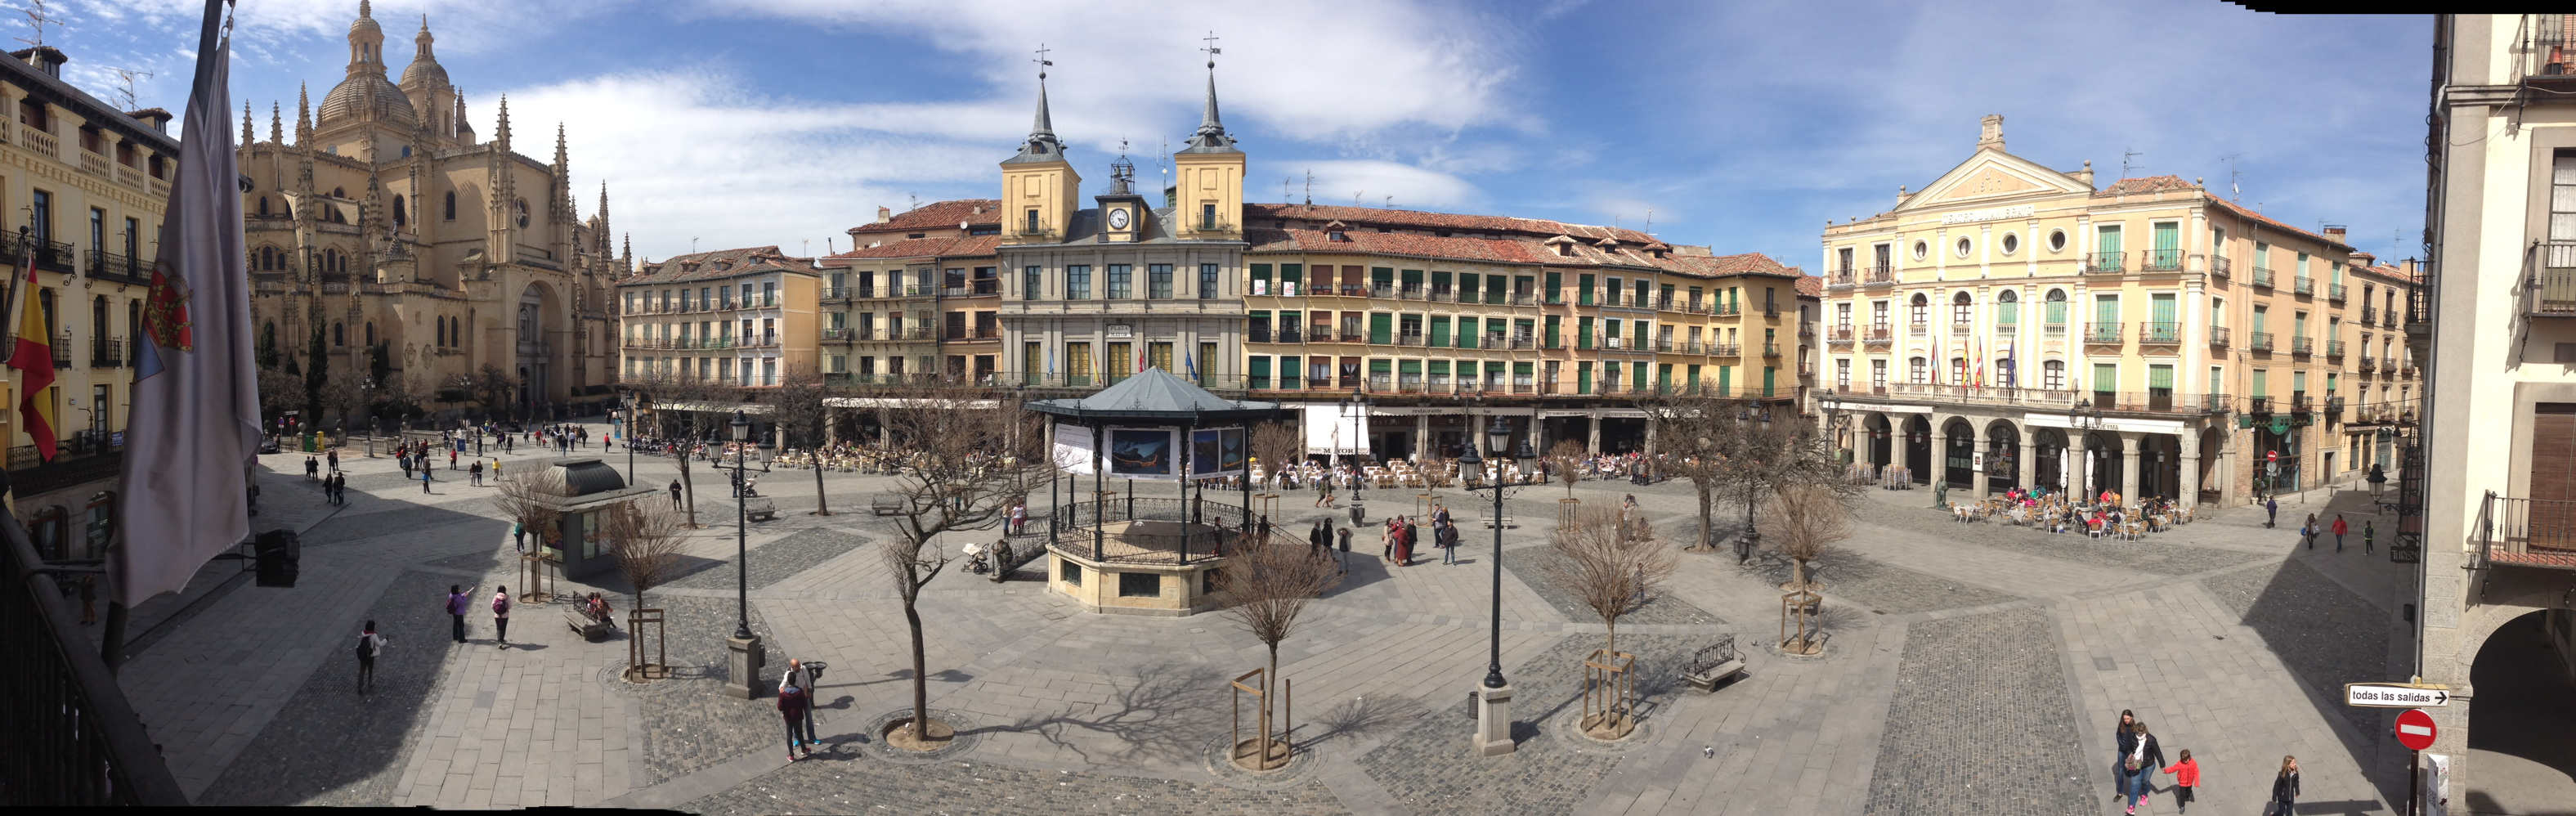 Plaza Mayor, Segovia